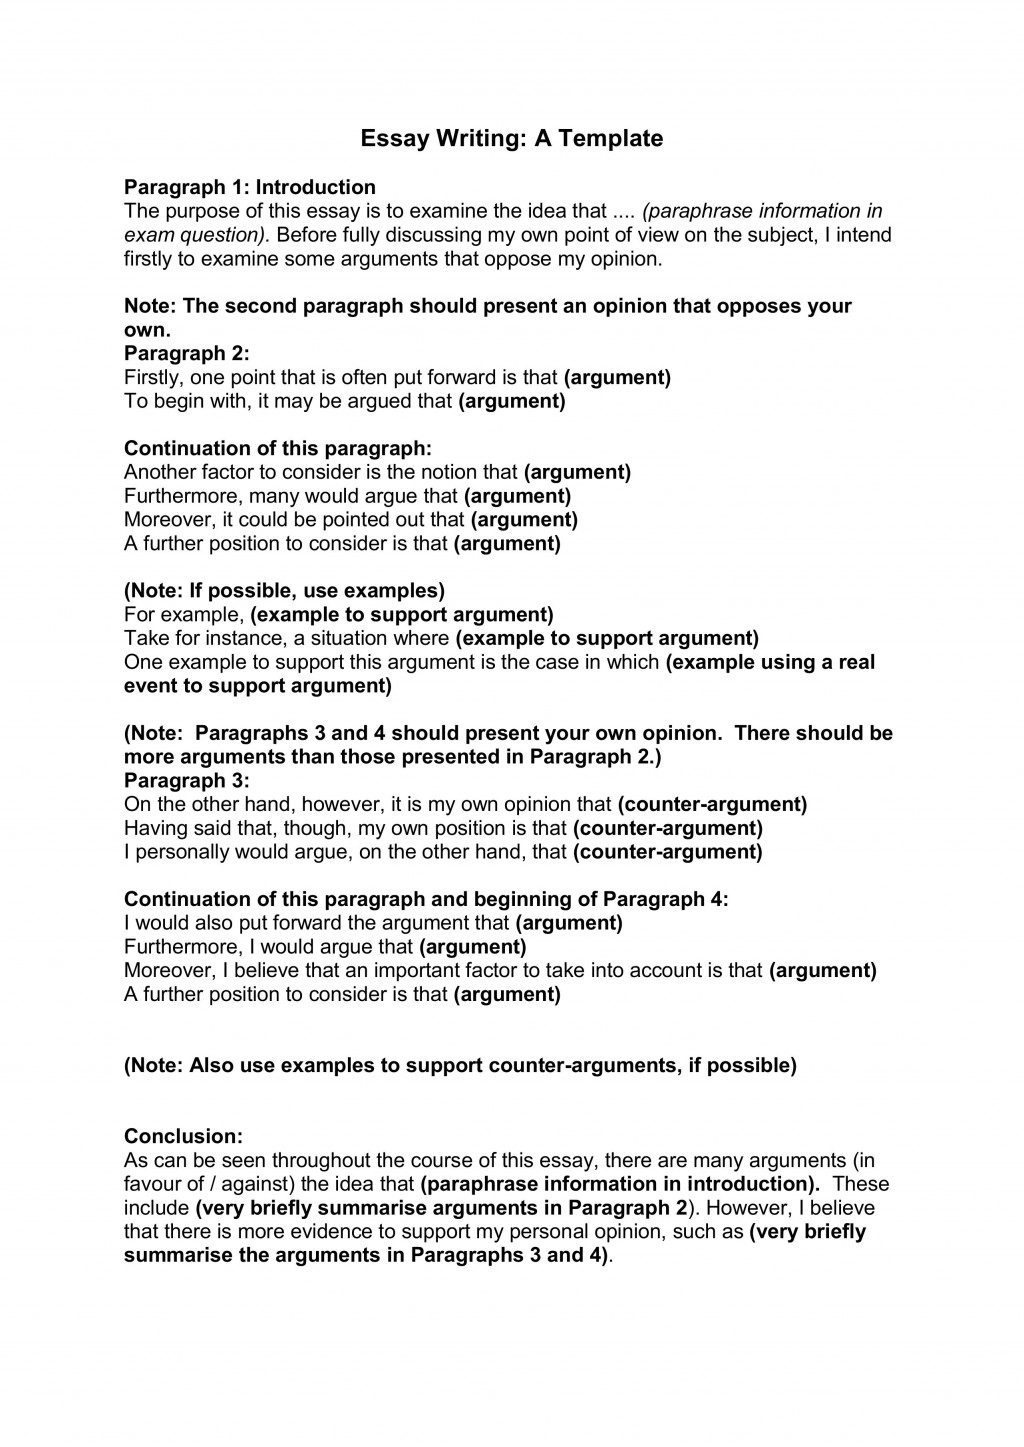 003 Essay Example School Uniforms In Essays On Should Students Wear Persuasive Writing Template Opinion All Have To Conclusion Teachers Uniform Impressive Against Sample Outline Large